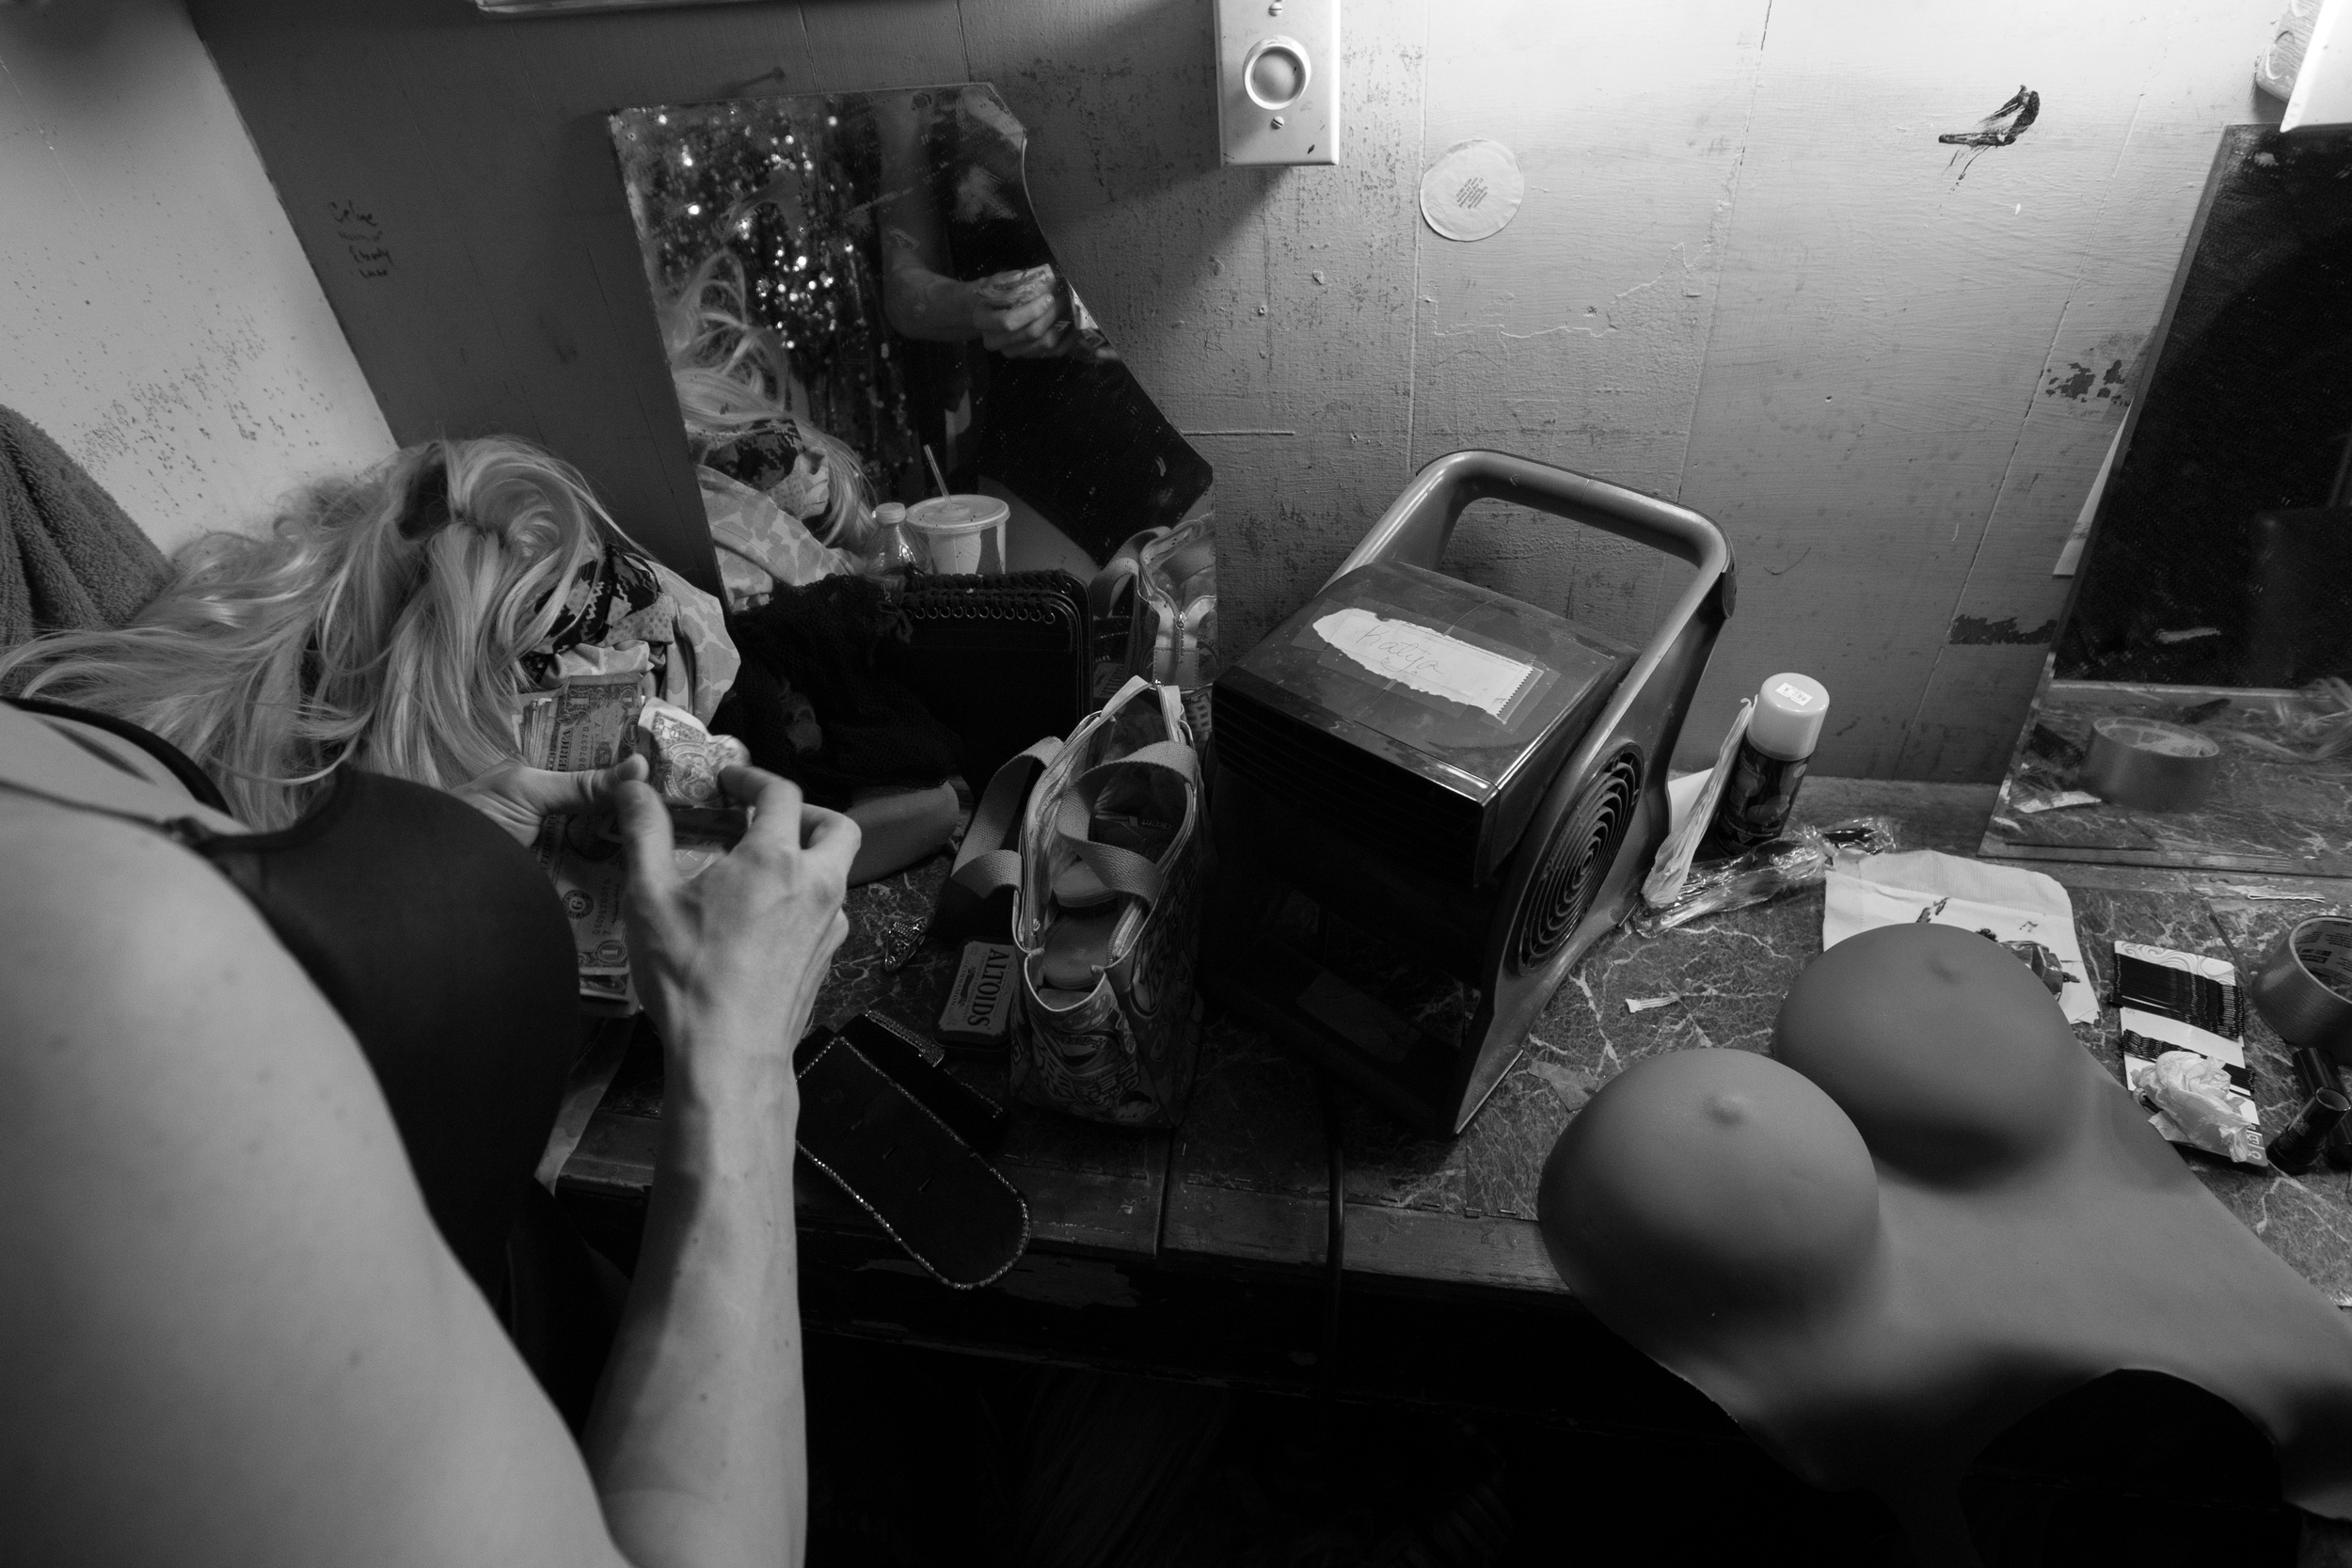 """Brian McCook counts dollar bills given to him as tips during his performance at Jaque's, a bar on Broadway Street in Boston, Mass. that features performers in drag. """"I'm always trying to get better,"""" McCook said. """"I don't want my shows to fizzle out."""" Photo credit: Justin Saglio"""